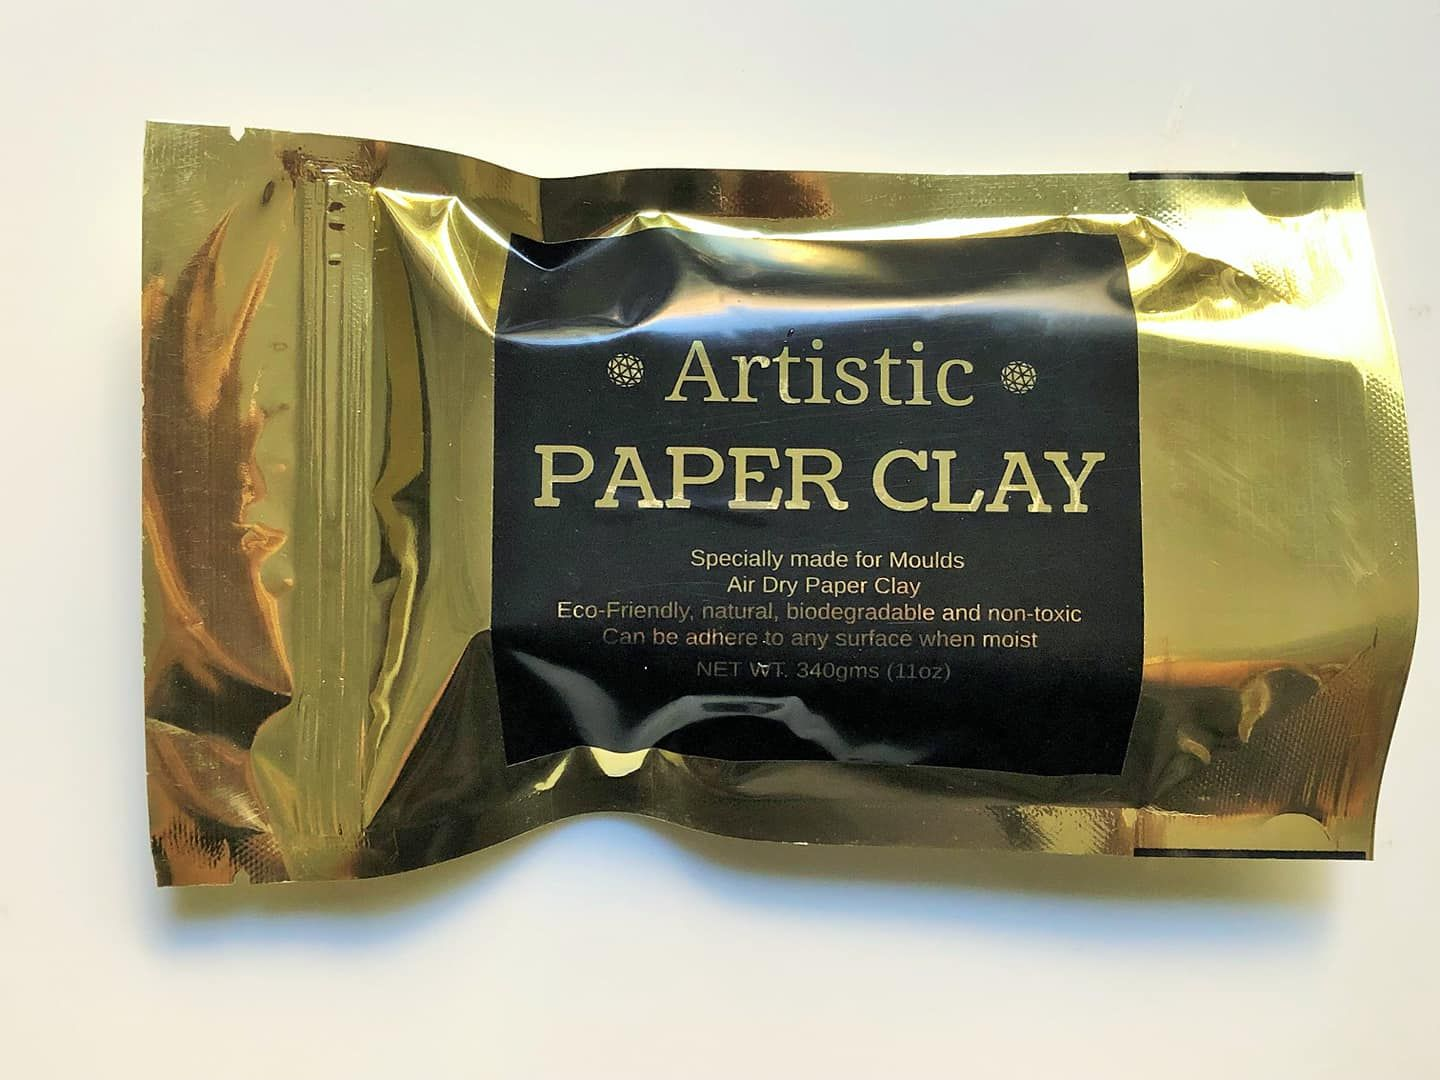 Paper Clay is specially formulated clay to use in Silicon